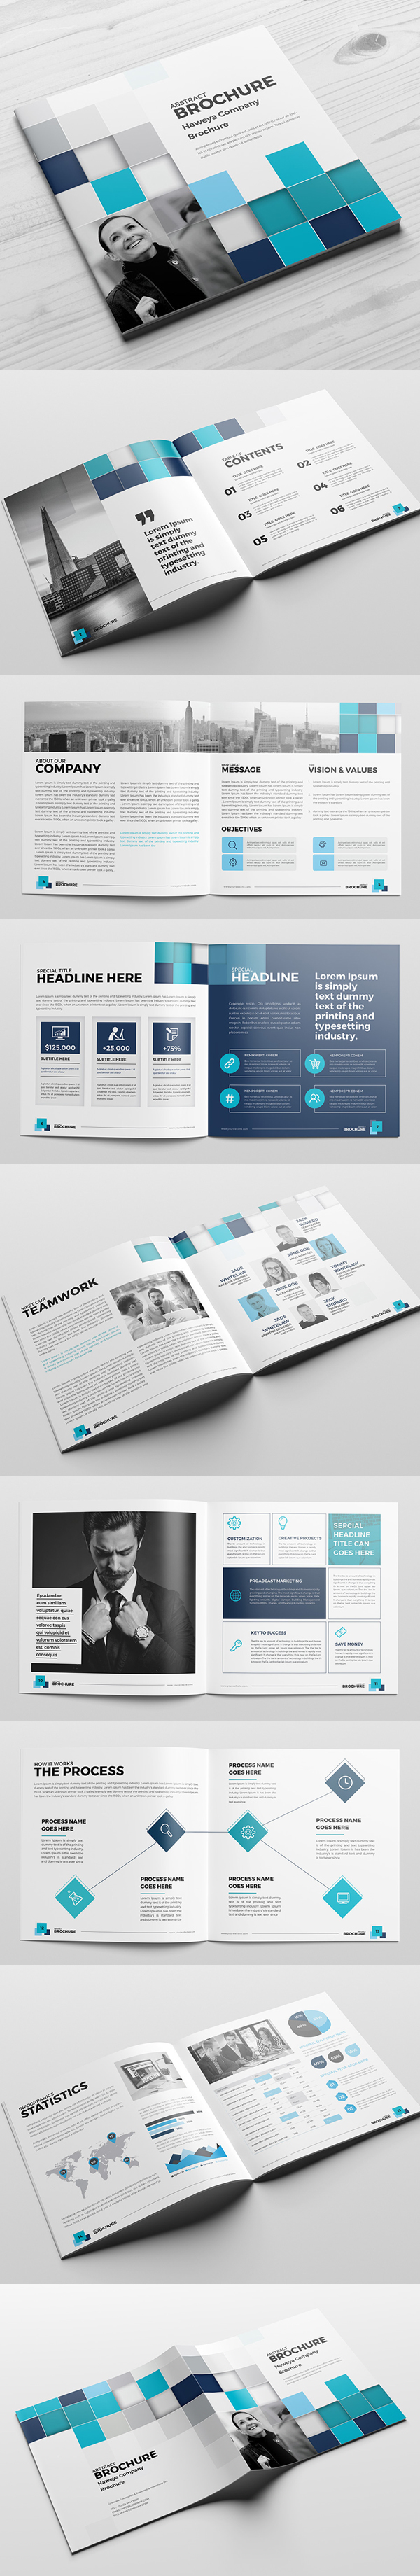 Abstract Square Brochure